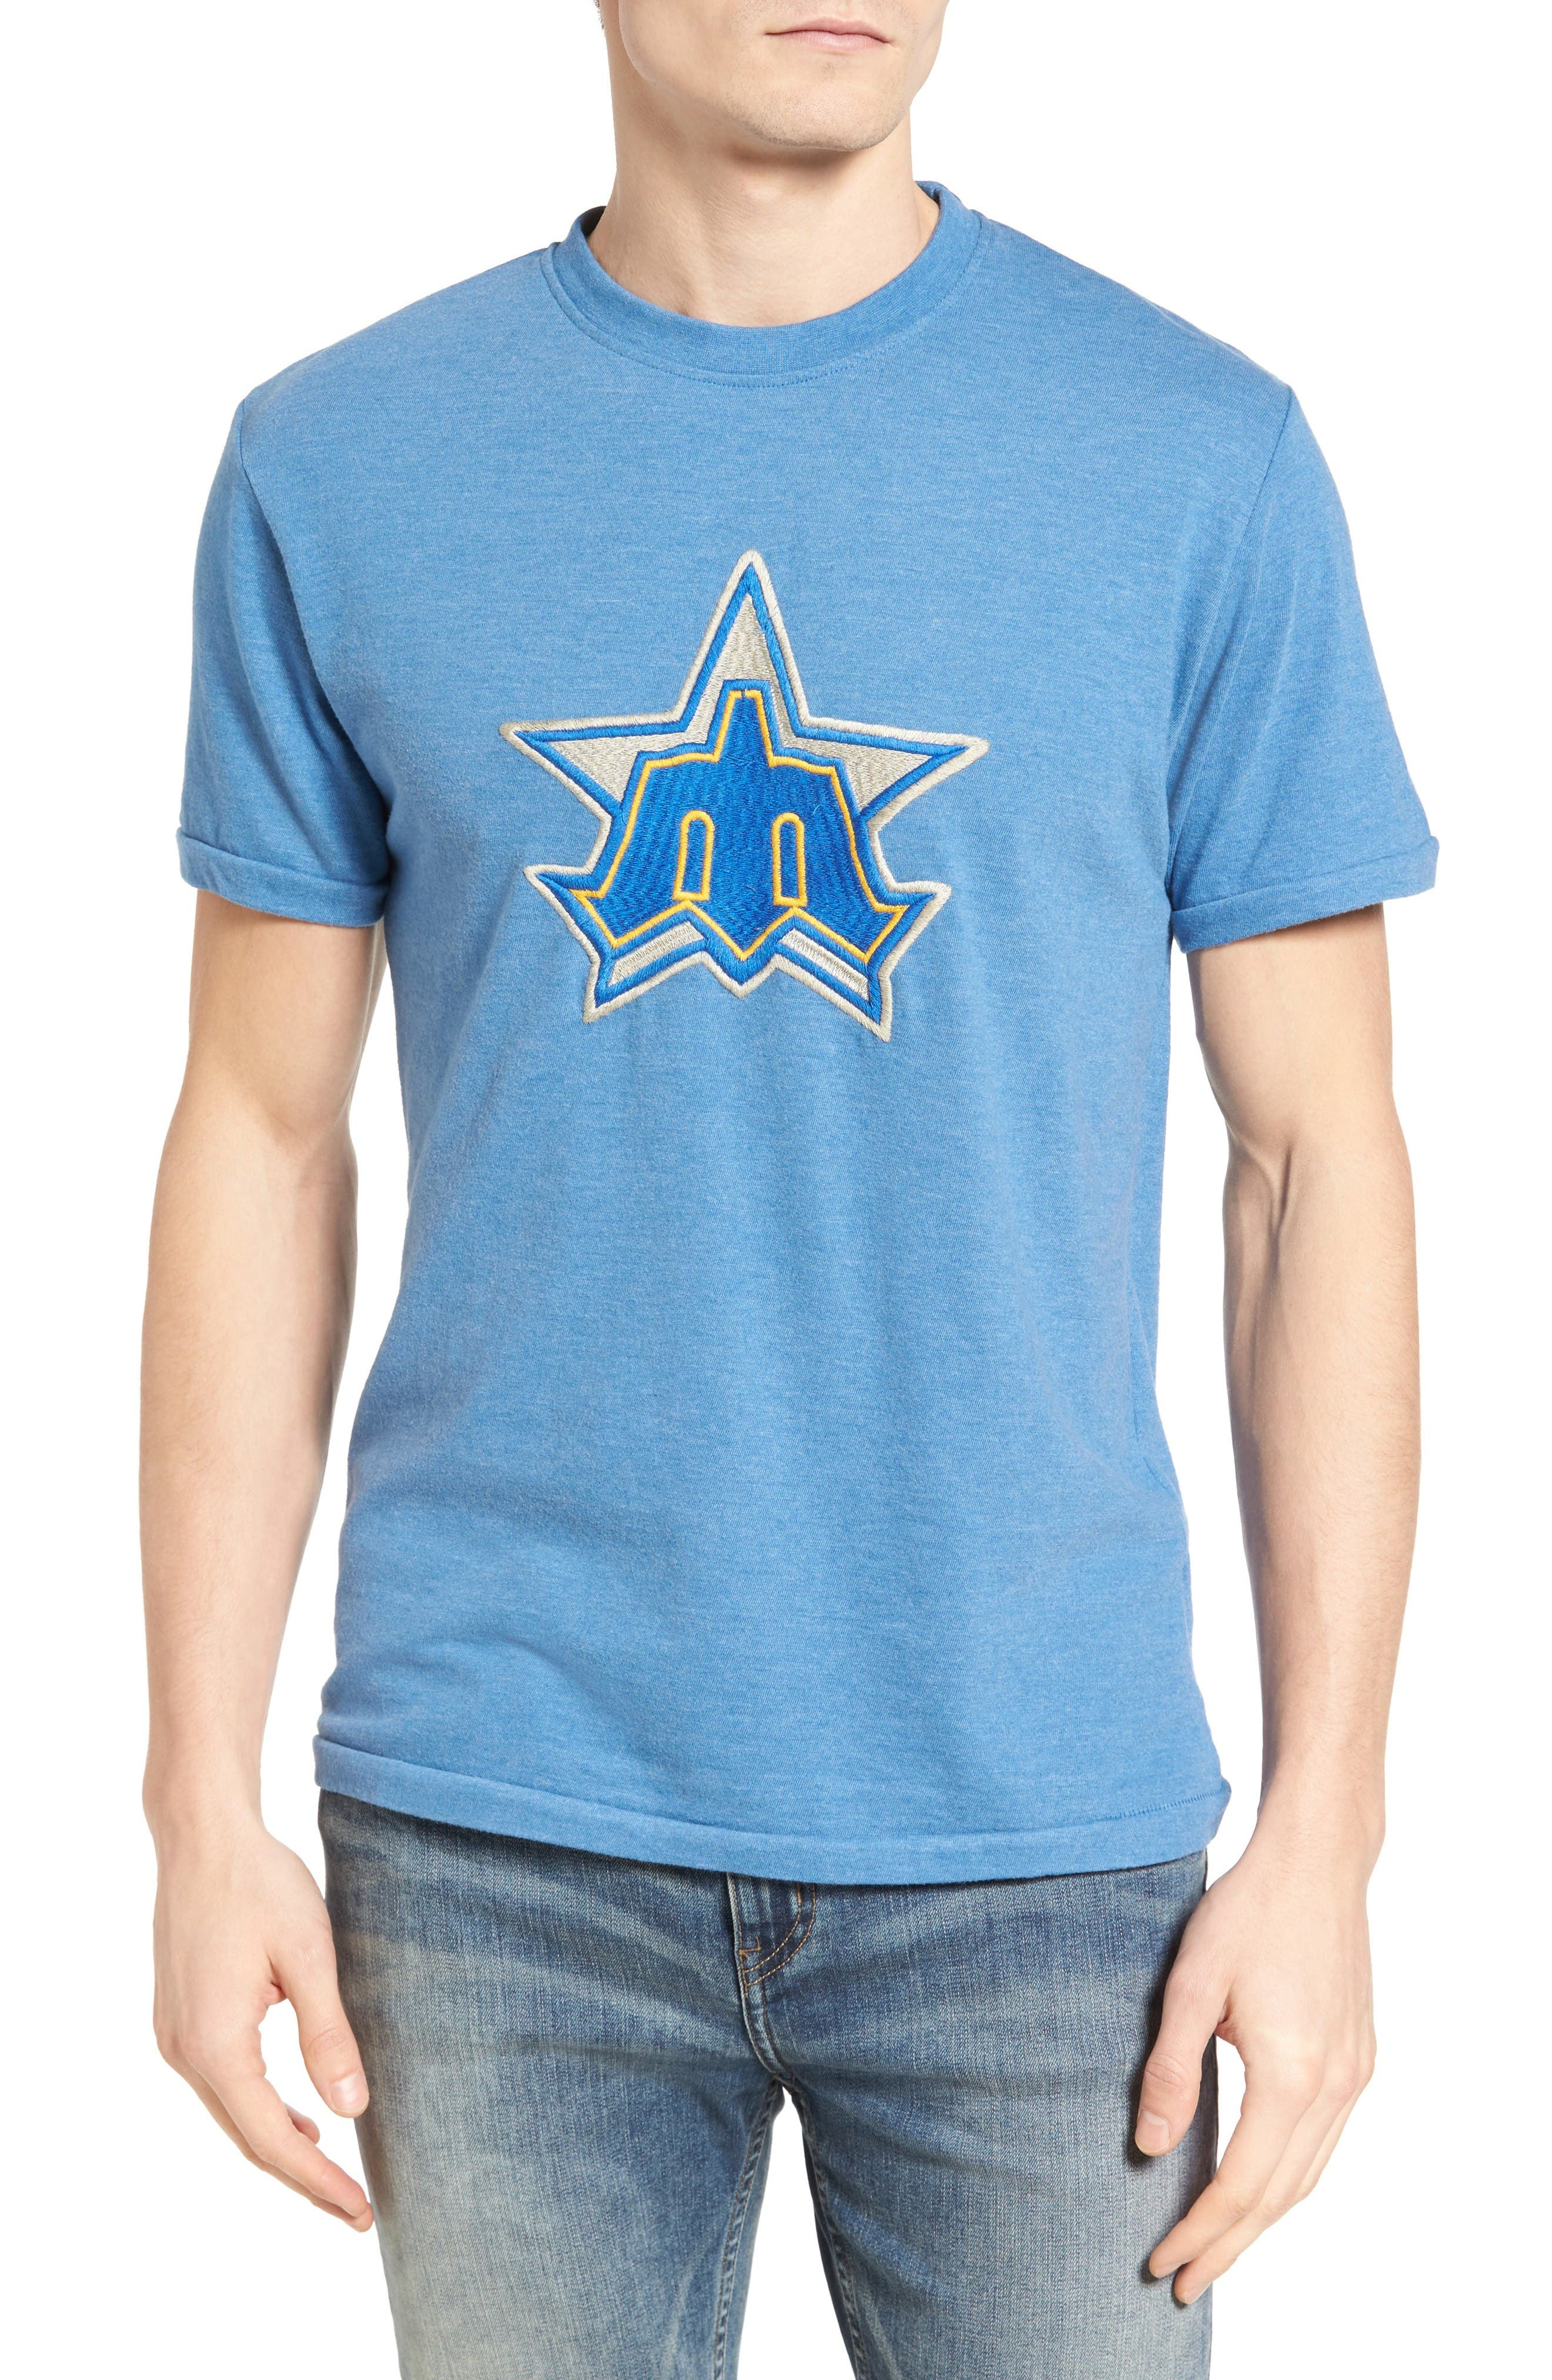 American Needle Hillwood Seattle Mariners T-Shirt